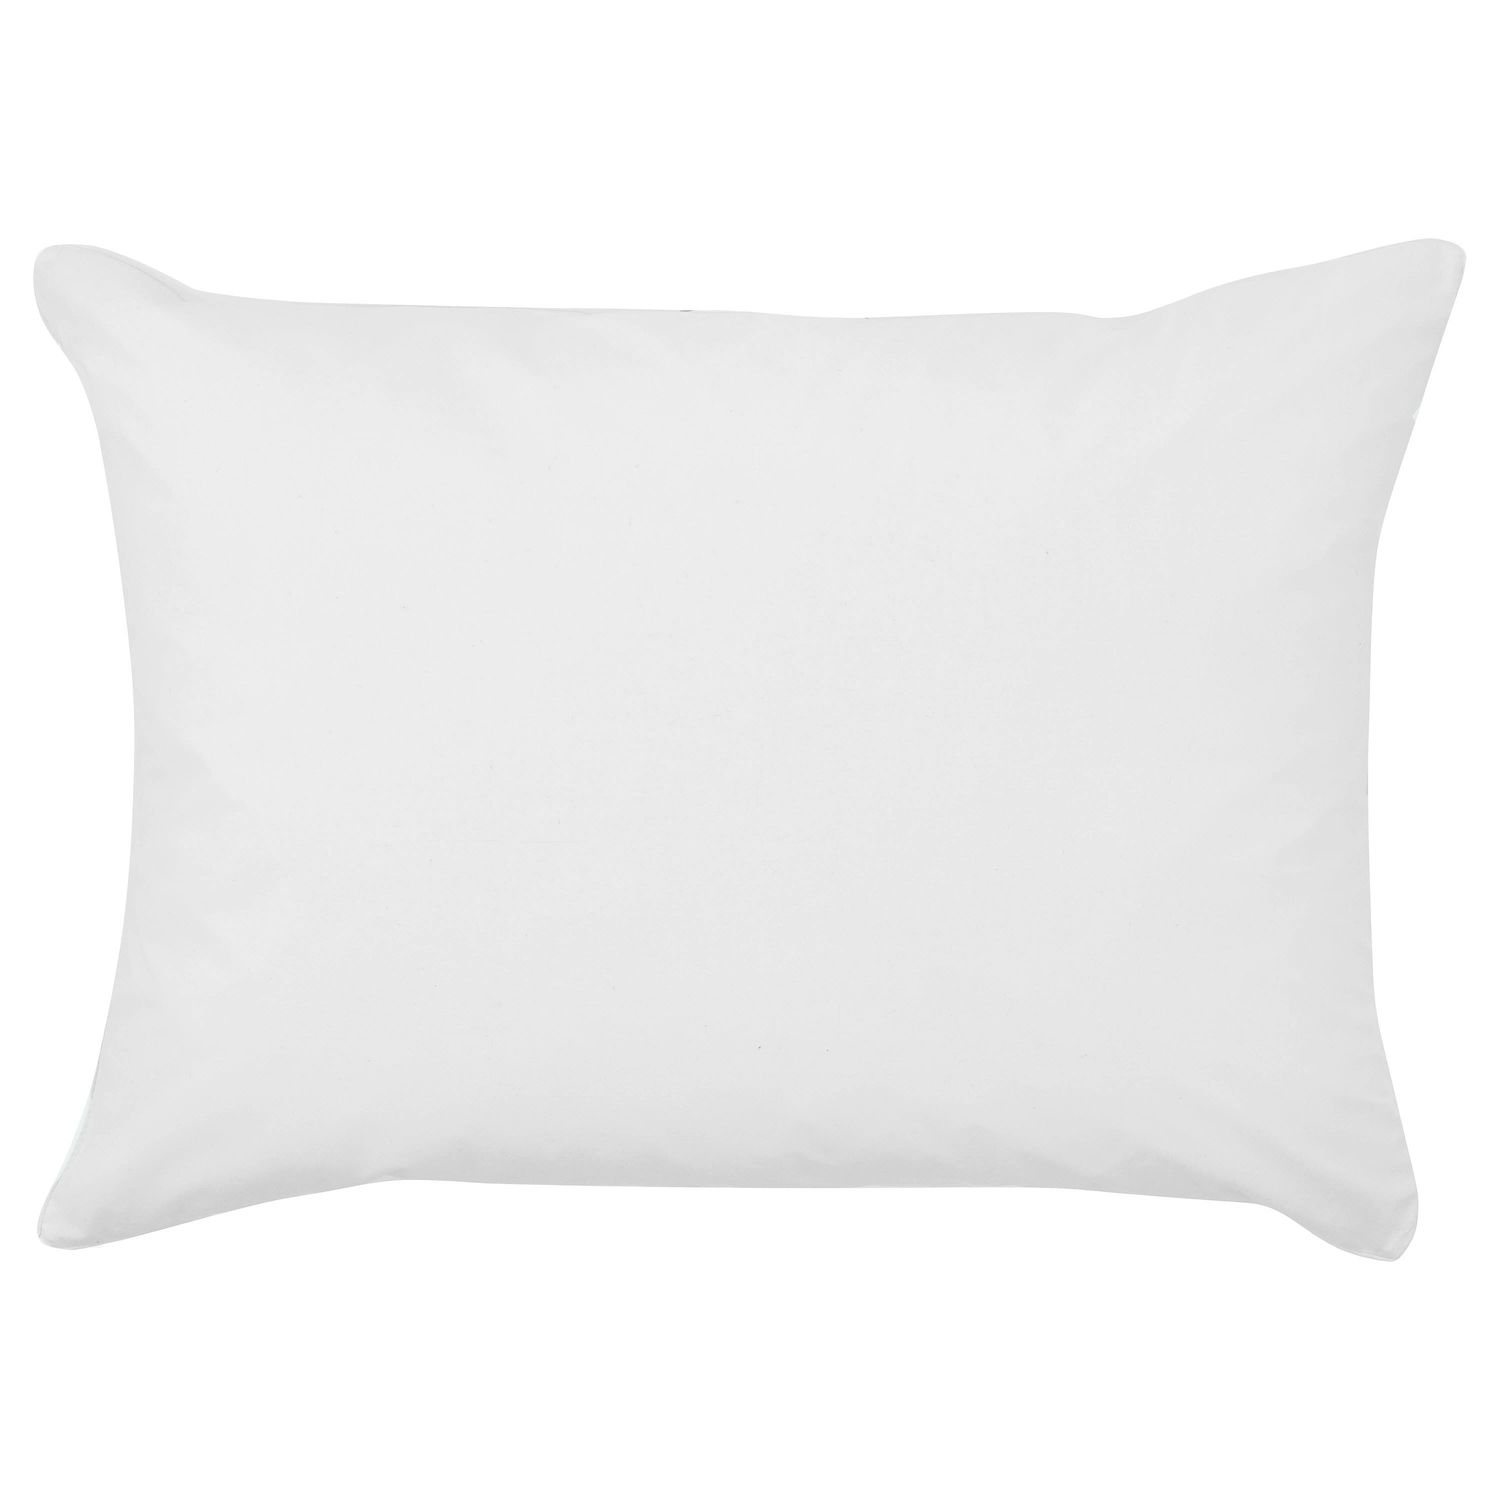 pillow protectors covers pillows